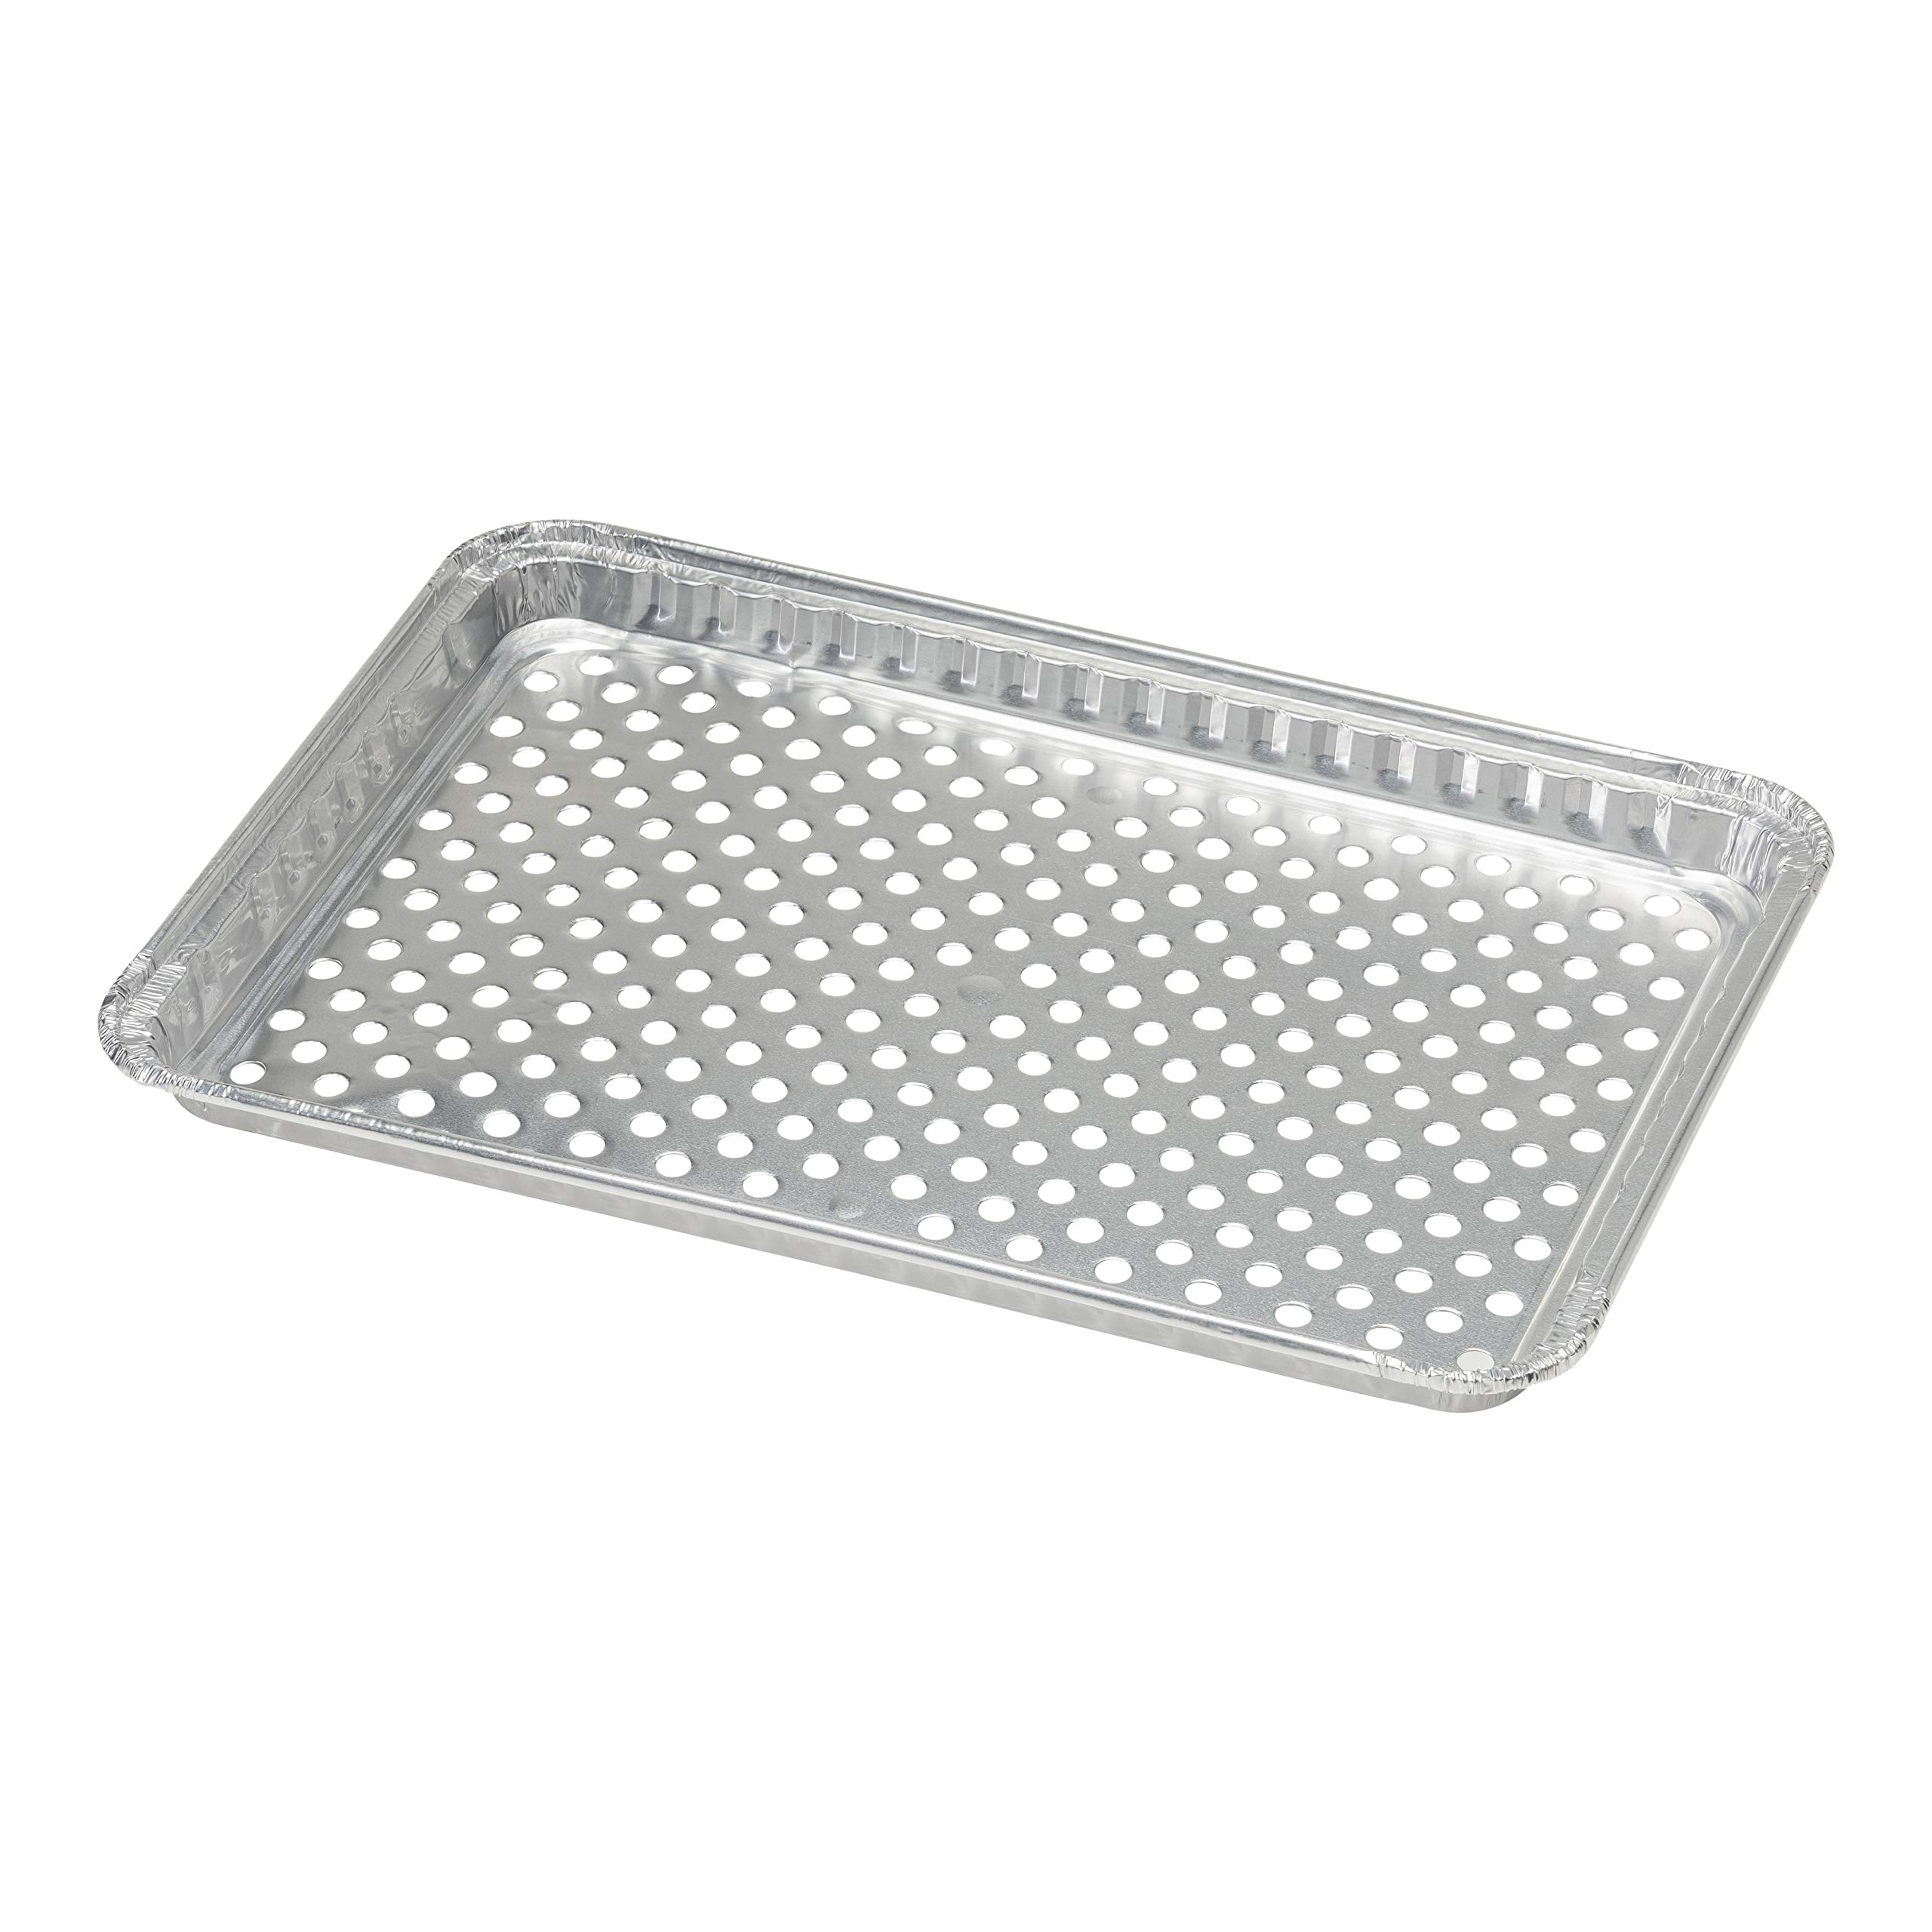 pinkada 24-Pack Disposable Aluminum Foil BBQ Grill Topper Pan Prevents Food from Falling into The Grill or Sticking to The Grate No Clean Up Necessary - Perfect for Camping and Outdoor Use by pinkada